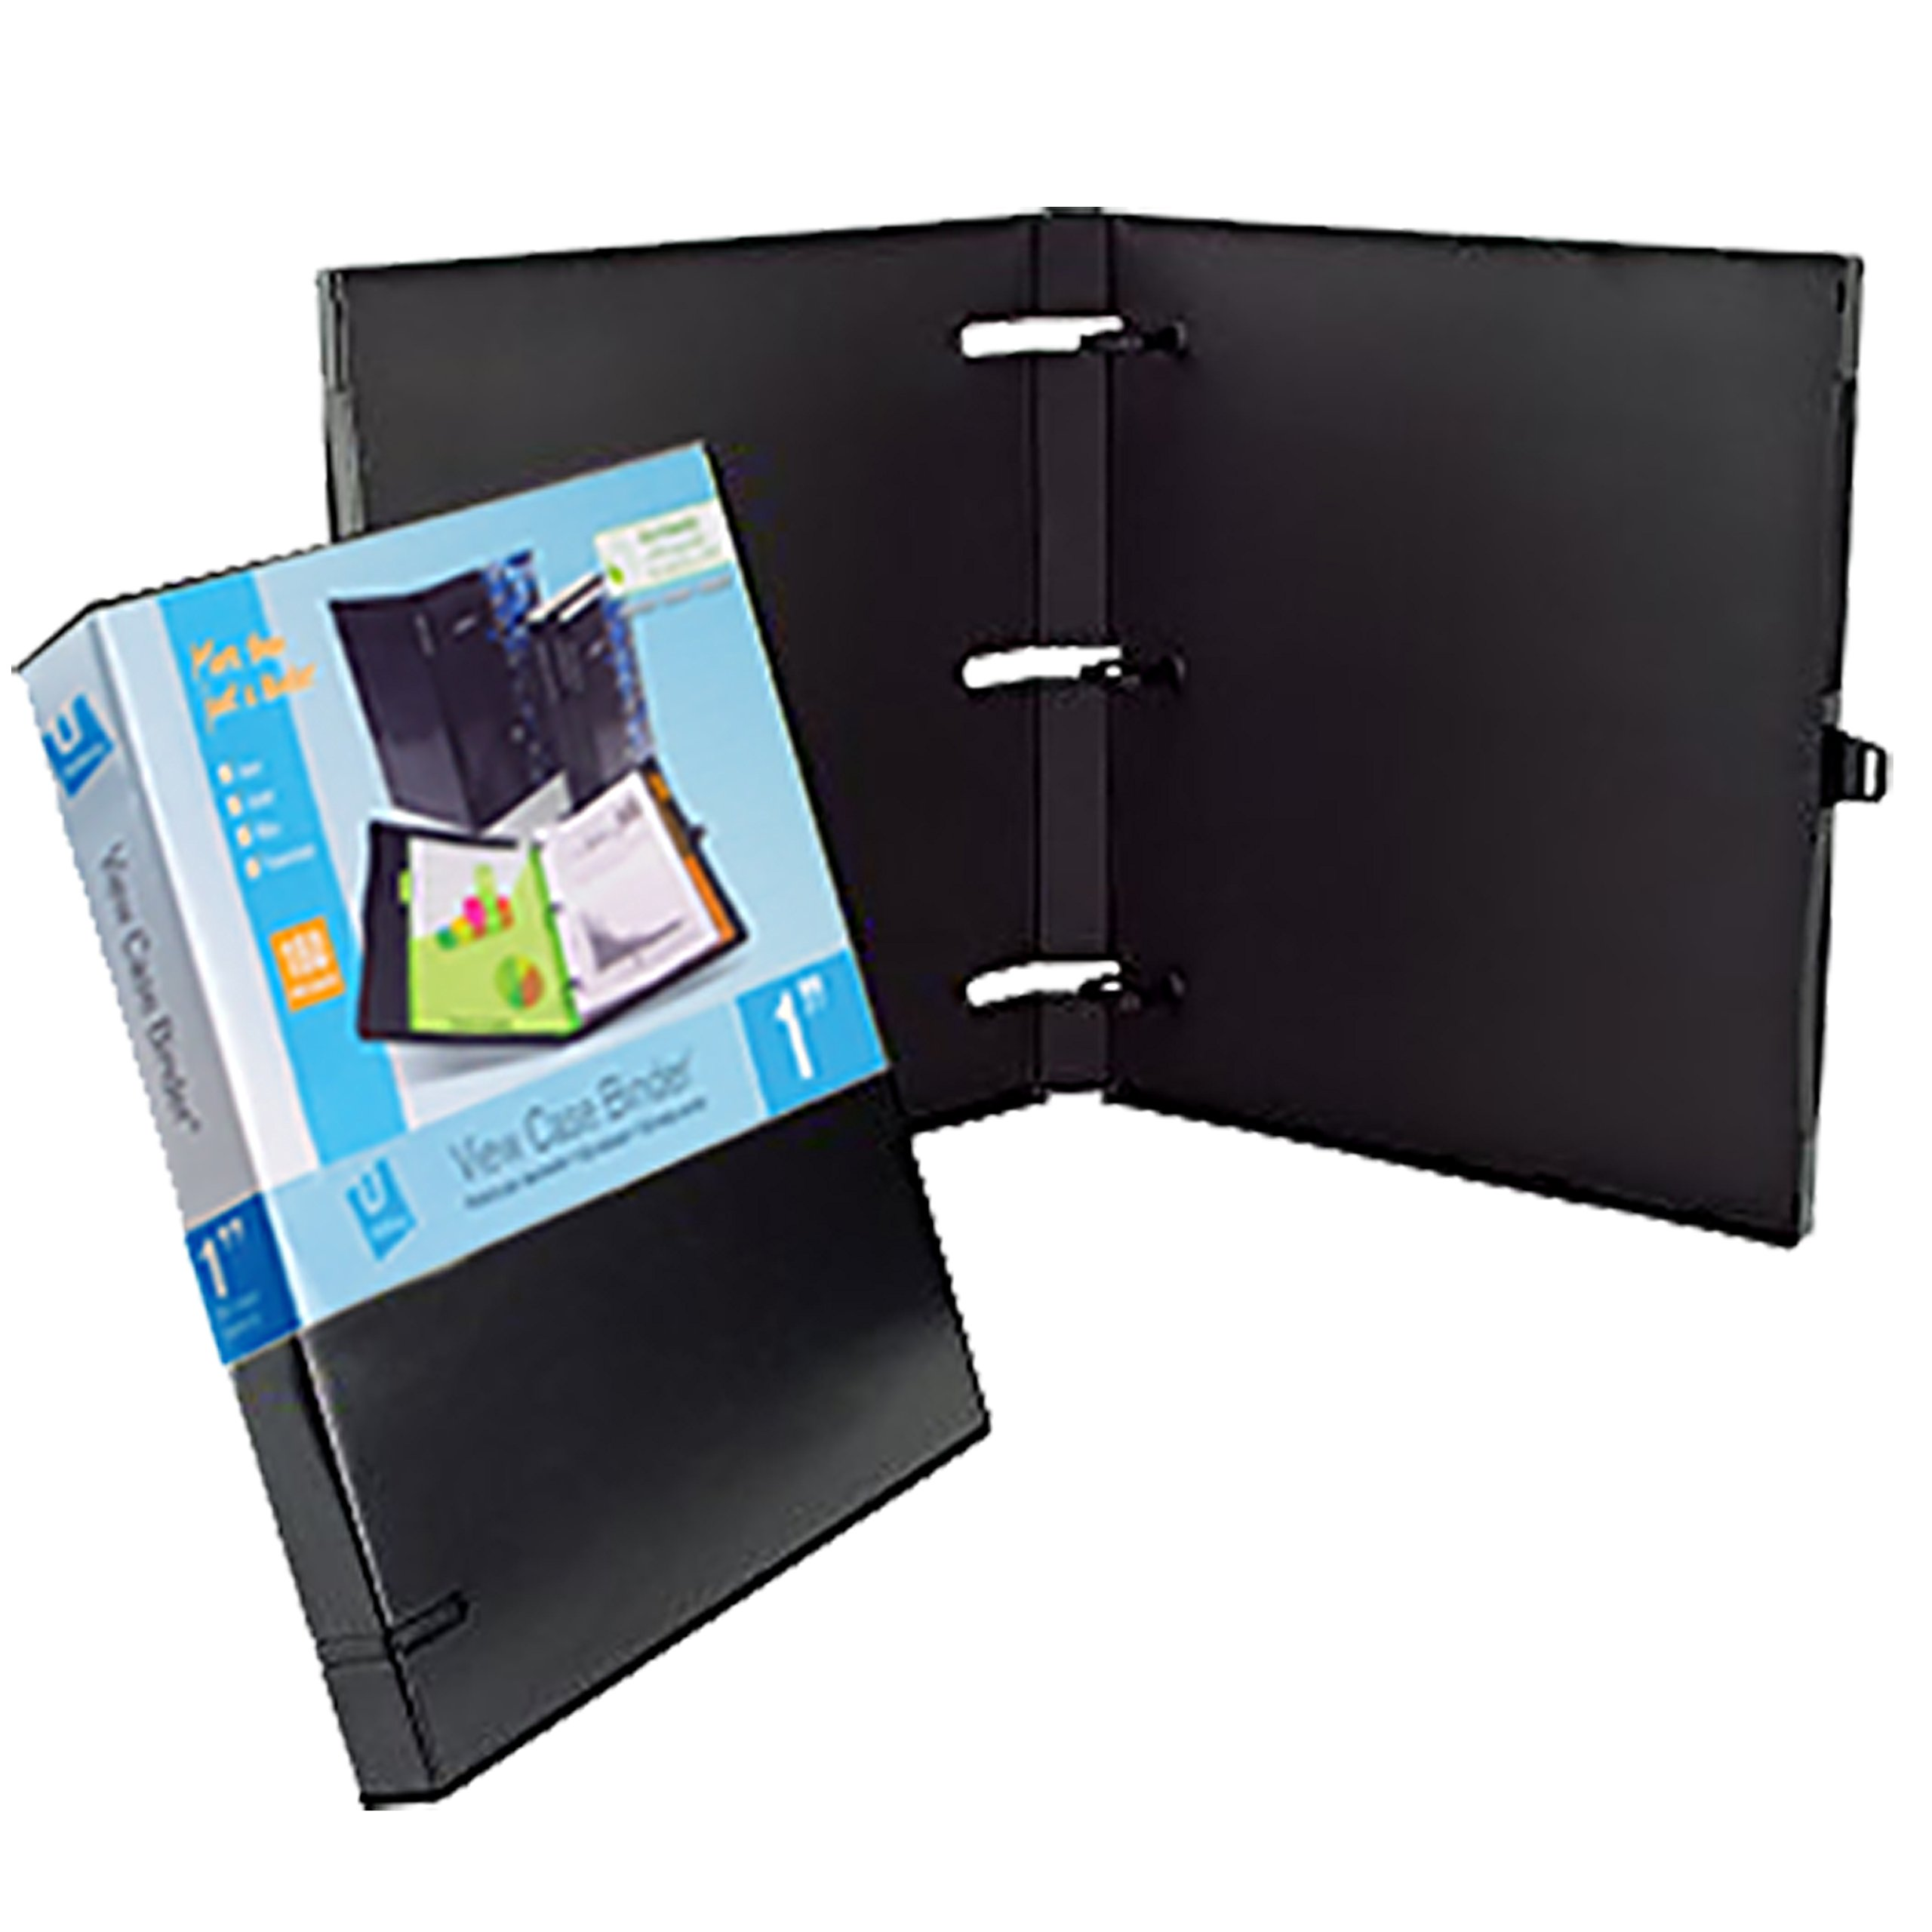 UniKeep 3 Ring Binder - Black - Case View Binder - 1.0 Inch Spine - With Clear Outer Overlay - Box of 20 Binders